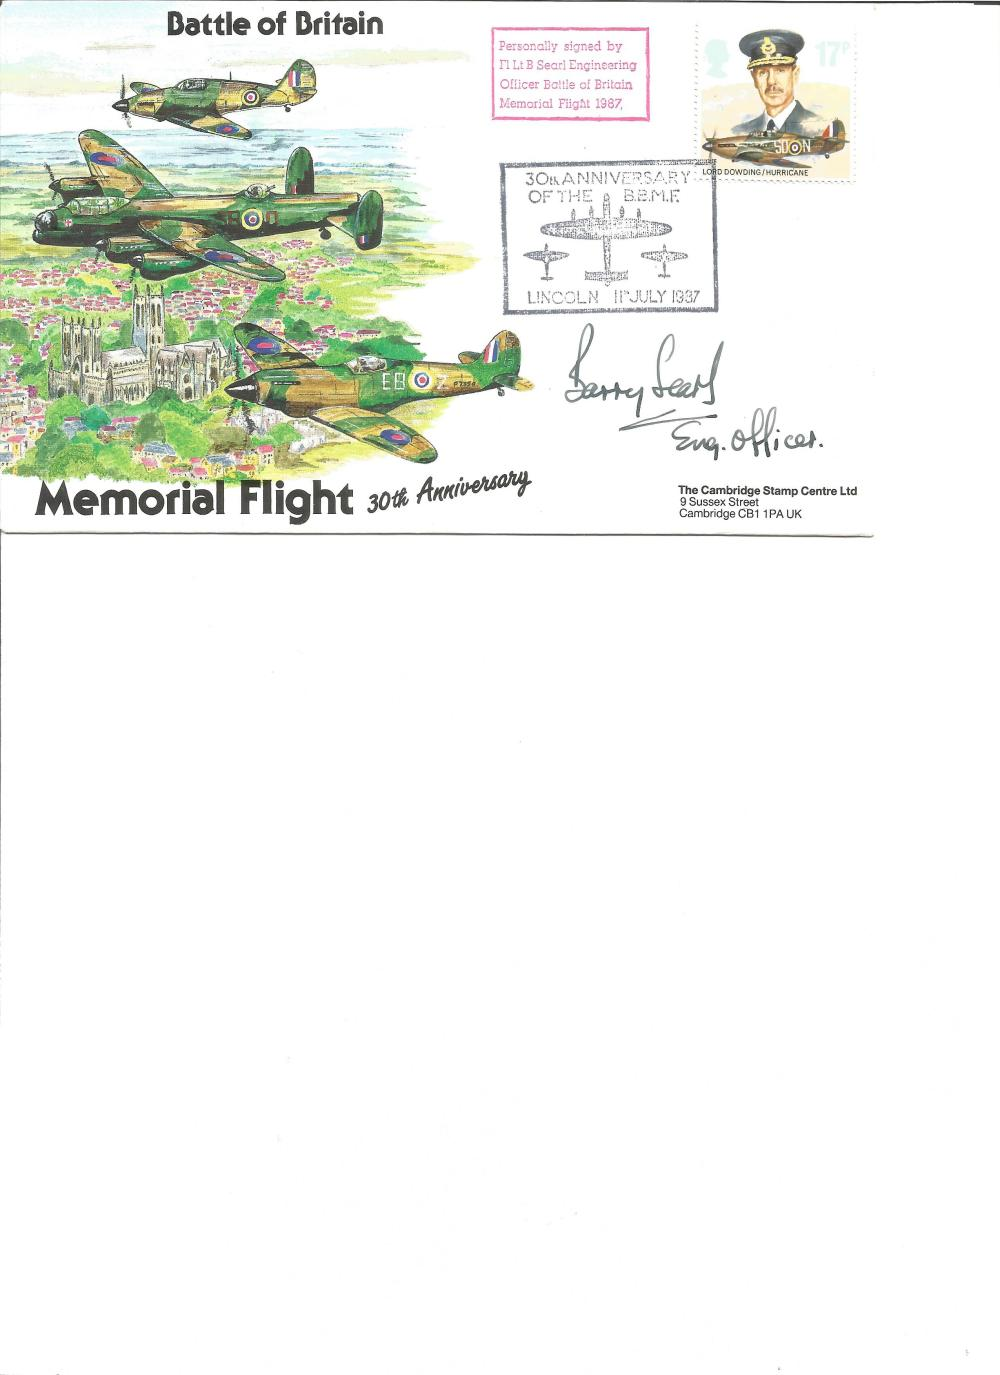 Flt Lt B Searle signed Battle of Britain Memorial Flight cover. Good Condition. All signed pieces